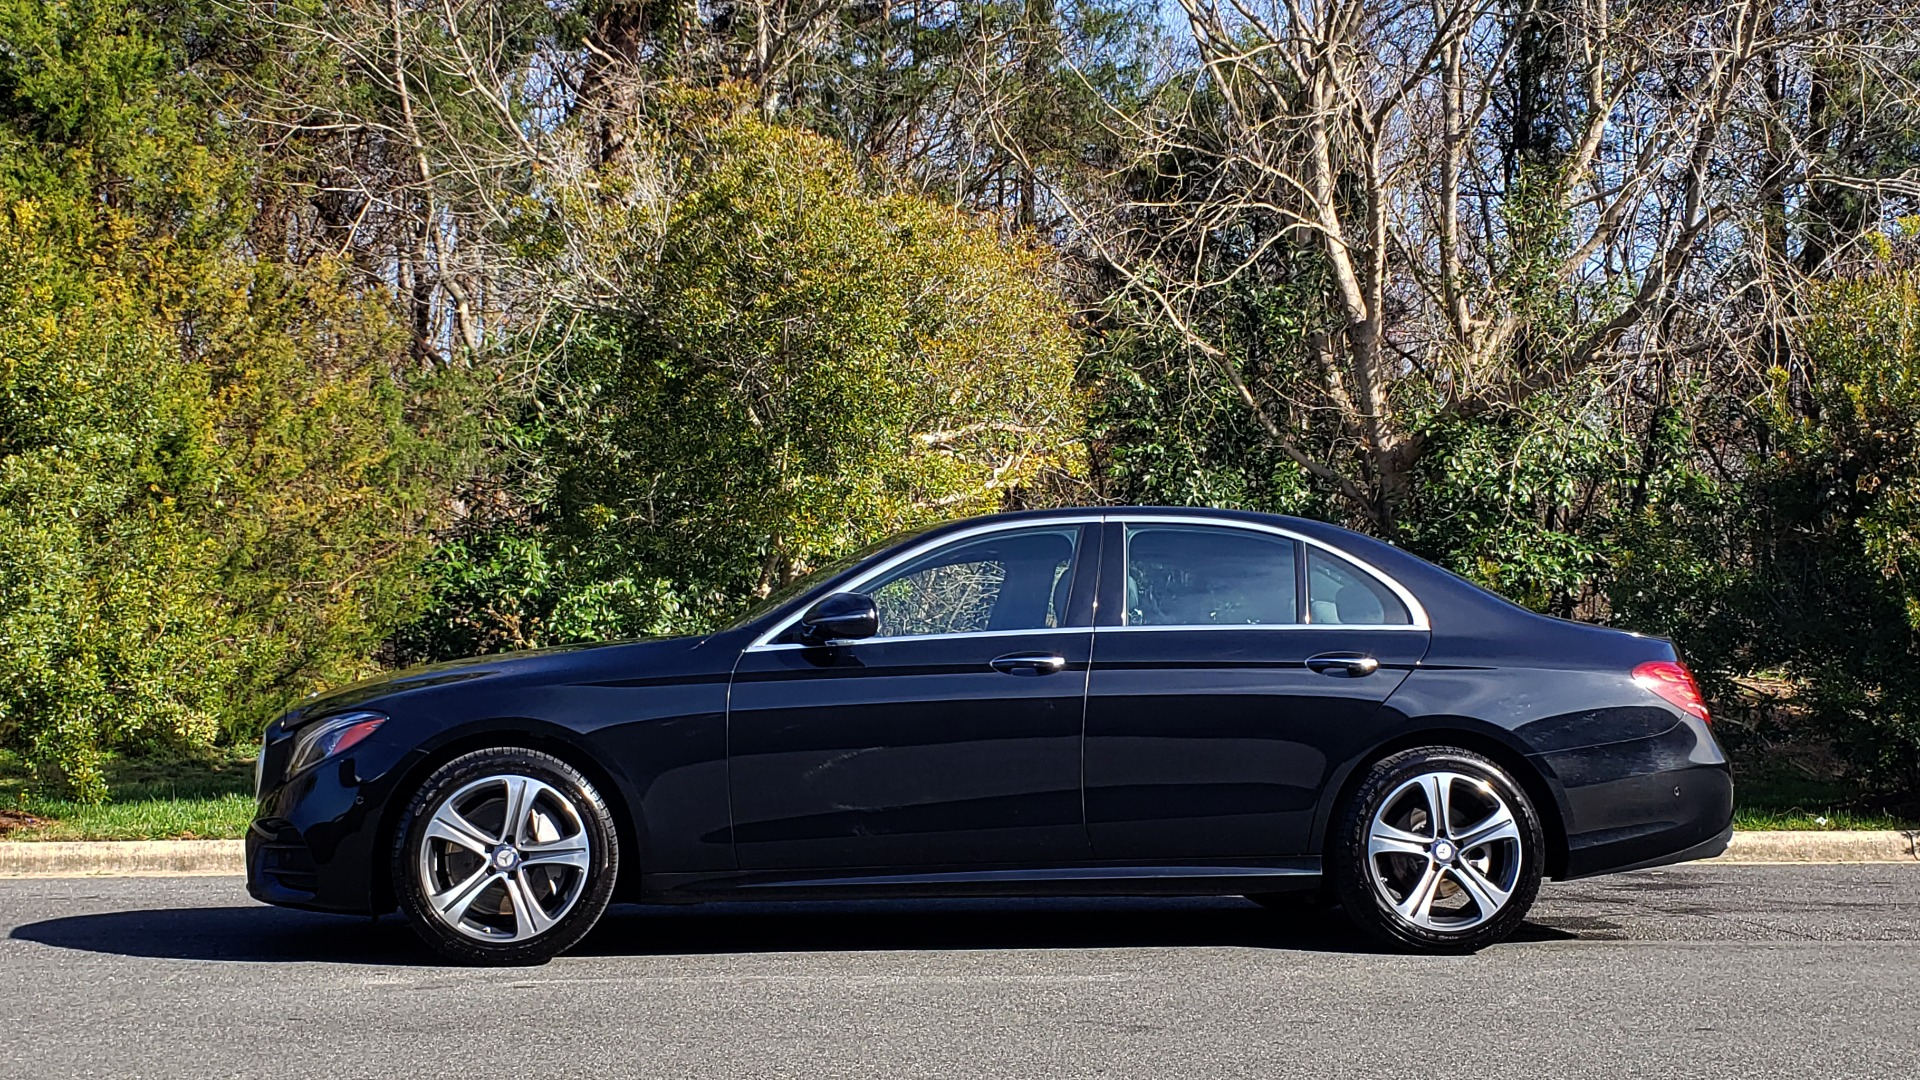 Used 2017 Mercedes-Benz E-CLASS E 300 PREMIUM / NAV / SUNROOF / BURMESTER / HTD STS / REARVIEW for sale Sold at Formula Imports in Charlotte NC 28227 2